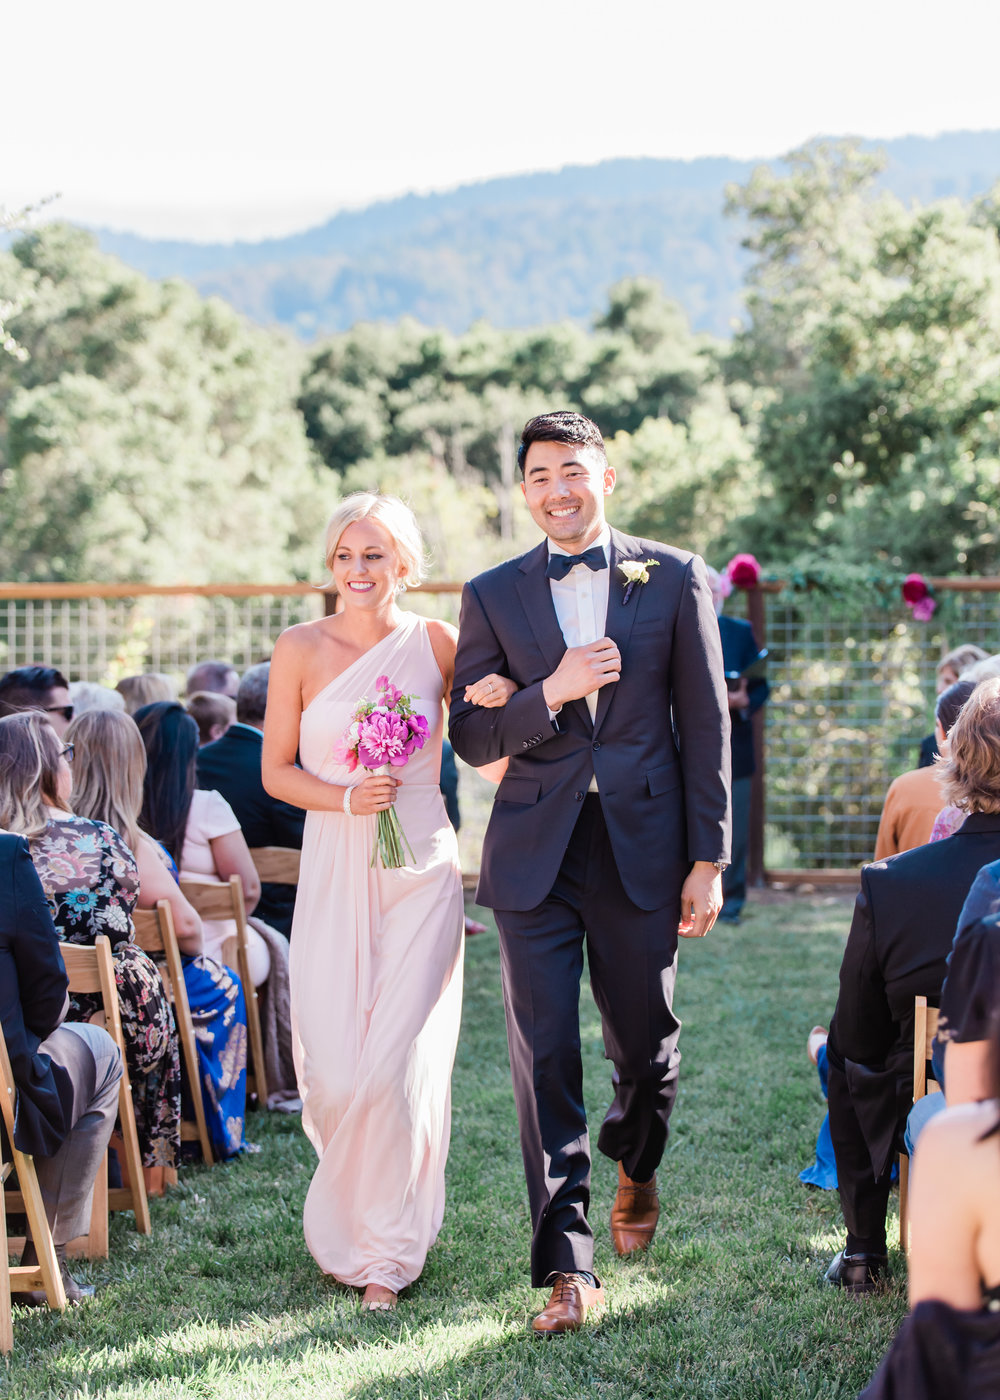 DresselWedding434KelliPricePhotography_WoodsideCA_June2018.jpg